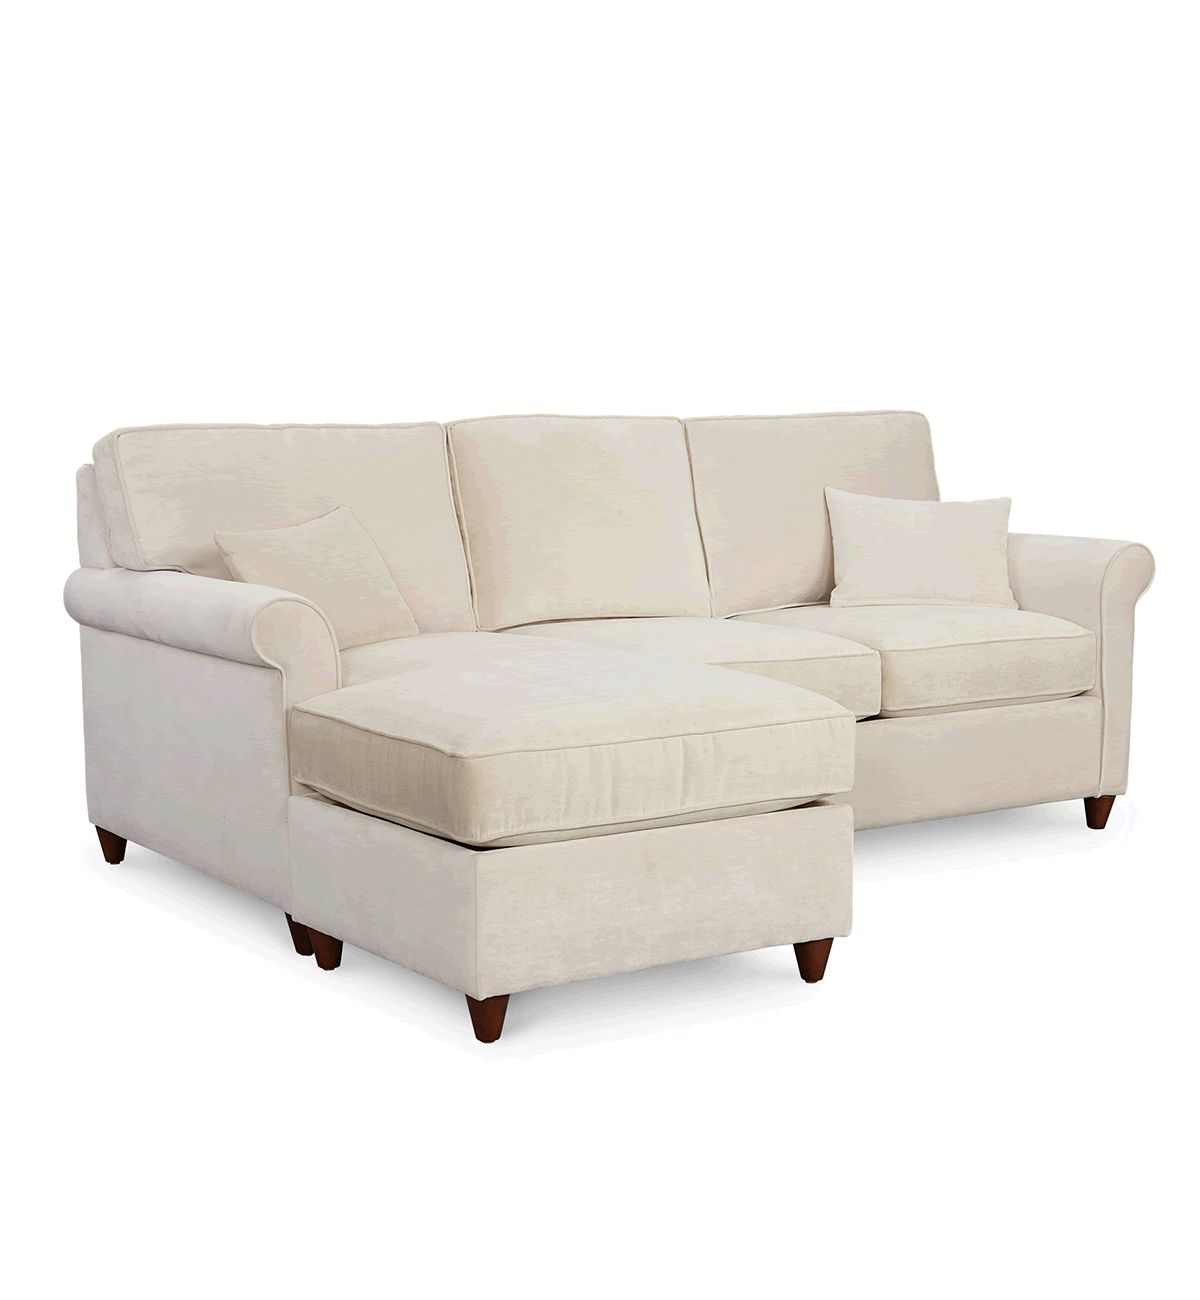 Macys Furnitur: Leather Sofas & Couches